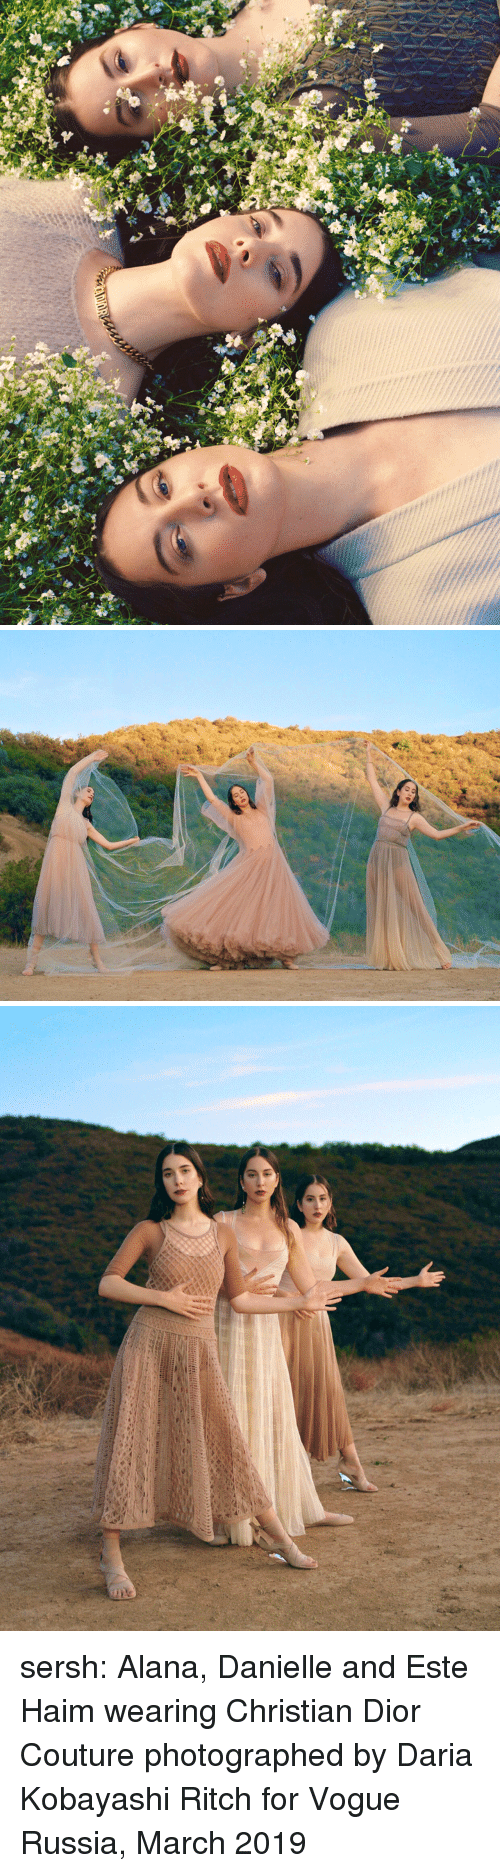 danielle: sersh: Alana, Danielle and Este Haim wearing Christian Dior Couturephotographed by Daria Kobayashi Ritch for Vogue Russia, March 2019